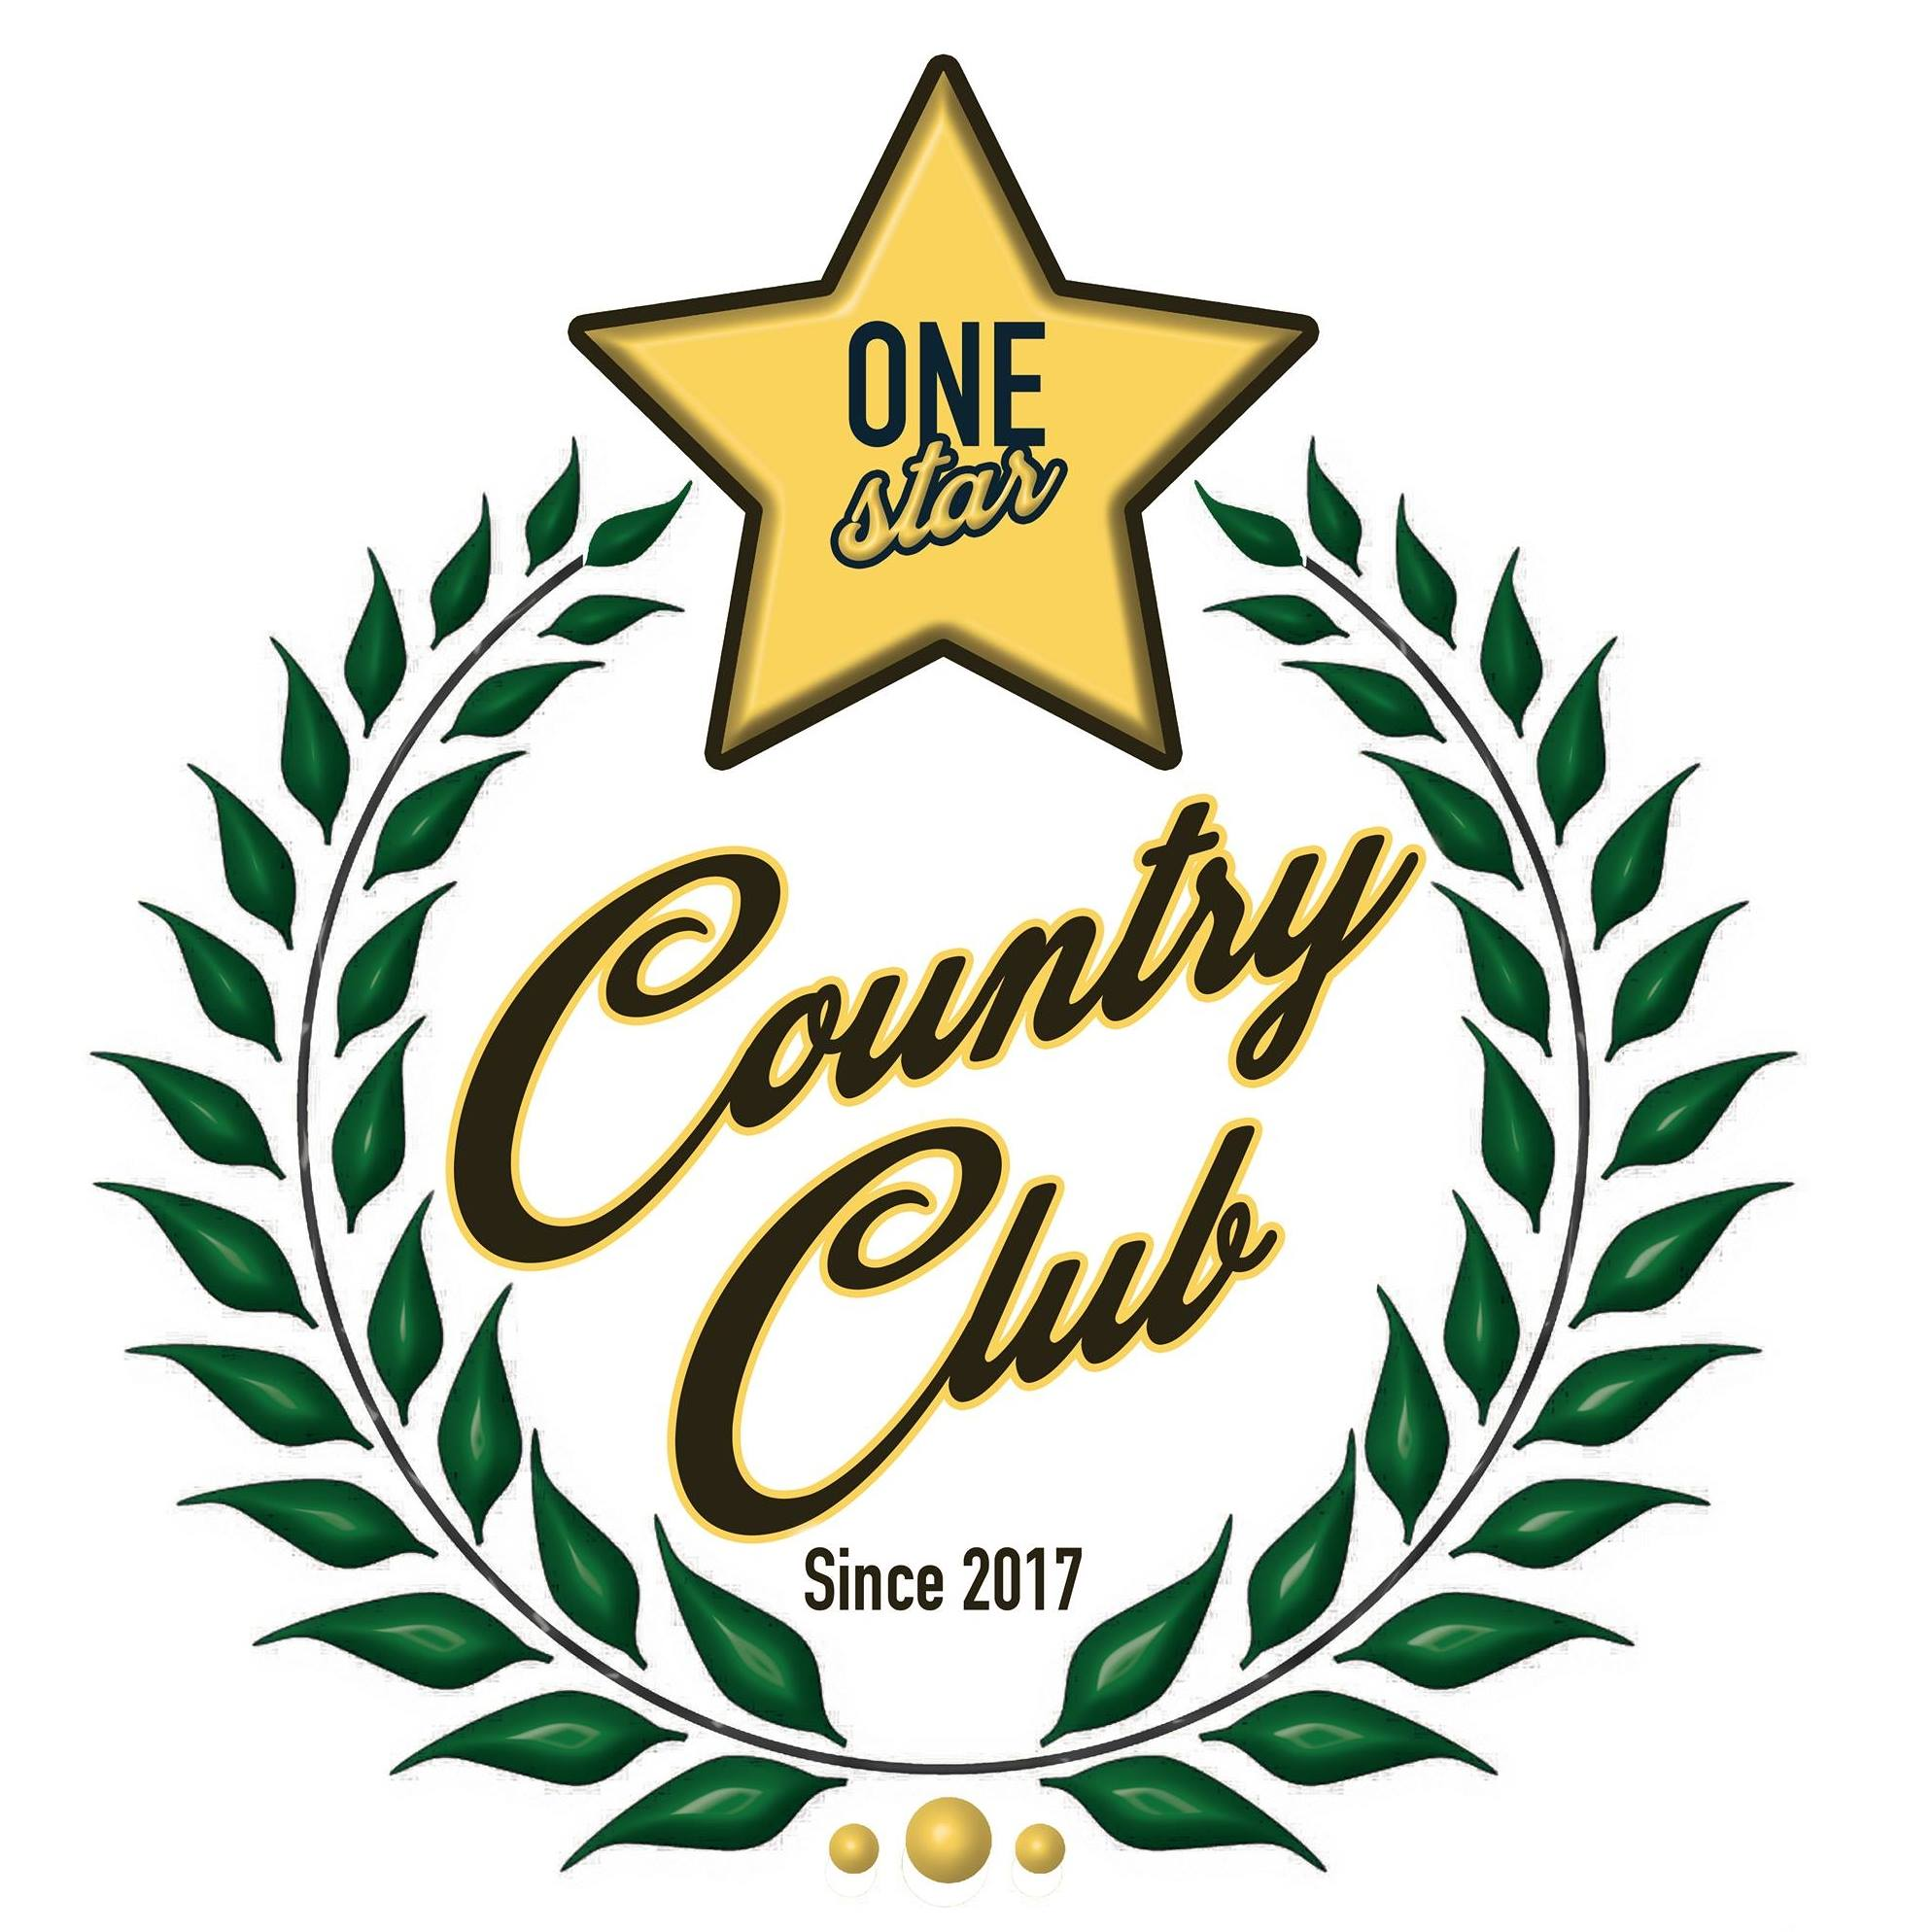 One Star Country Club